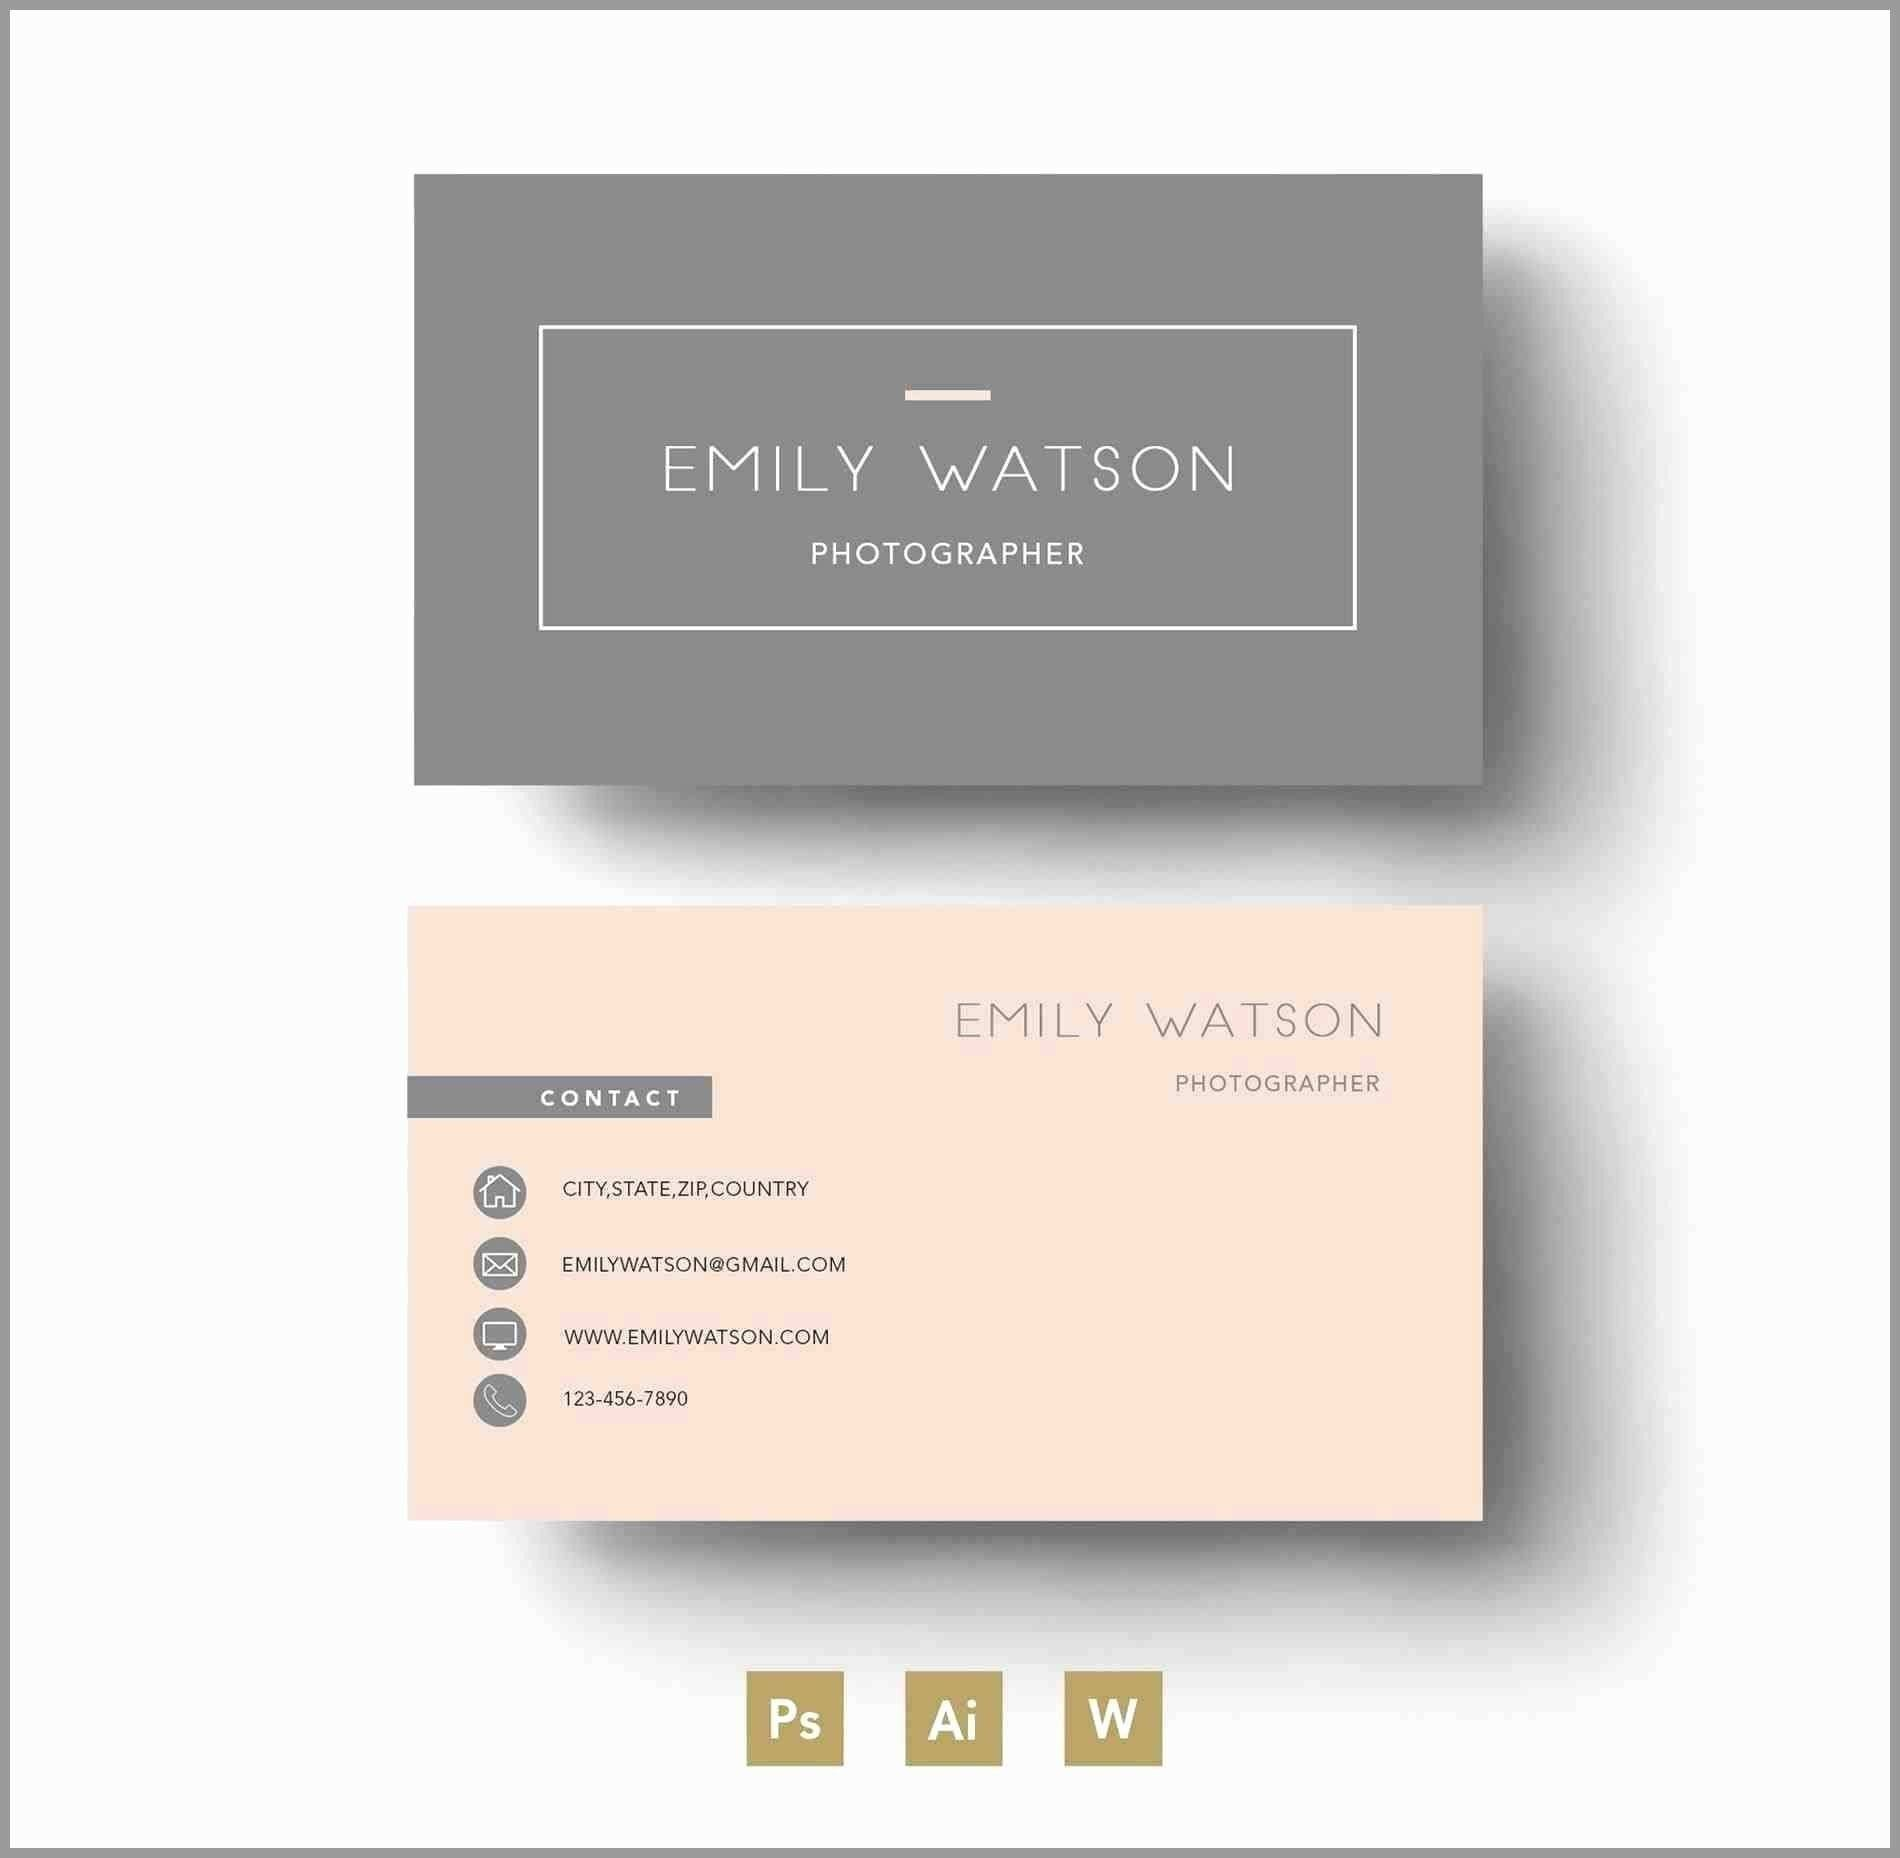 Download Valid Esthetician Business Card Templates Can Save At Valid Esthetician Business Card Temp Cool Business Cards Name Card Design Business Card Template